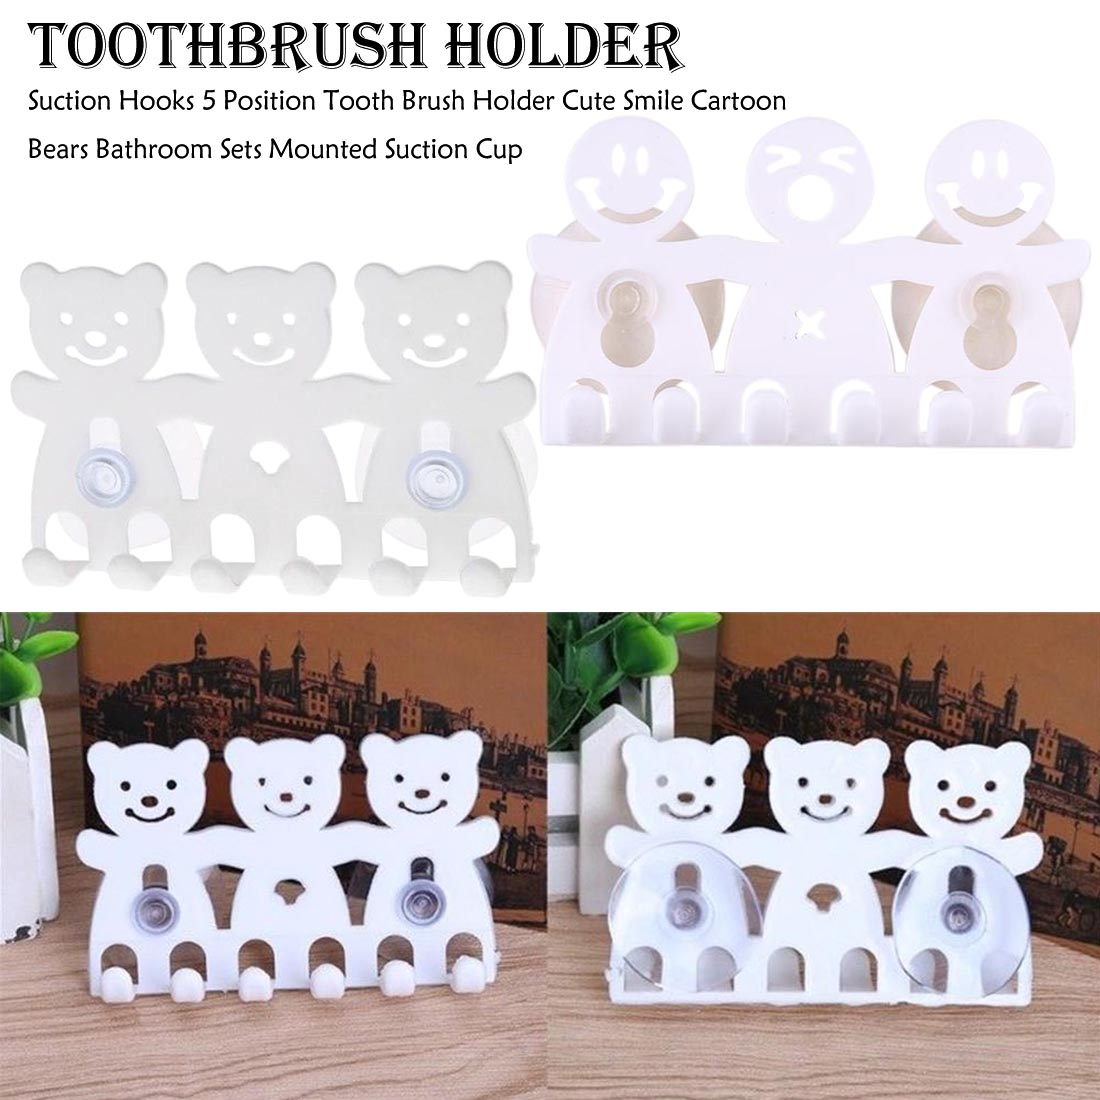 1pcs Wall Mounted Suction Cup Hooks 5 Position Toothbrush Holder Cute Smile Cartoon Bears Bathroom Sets image